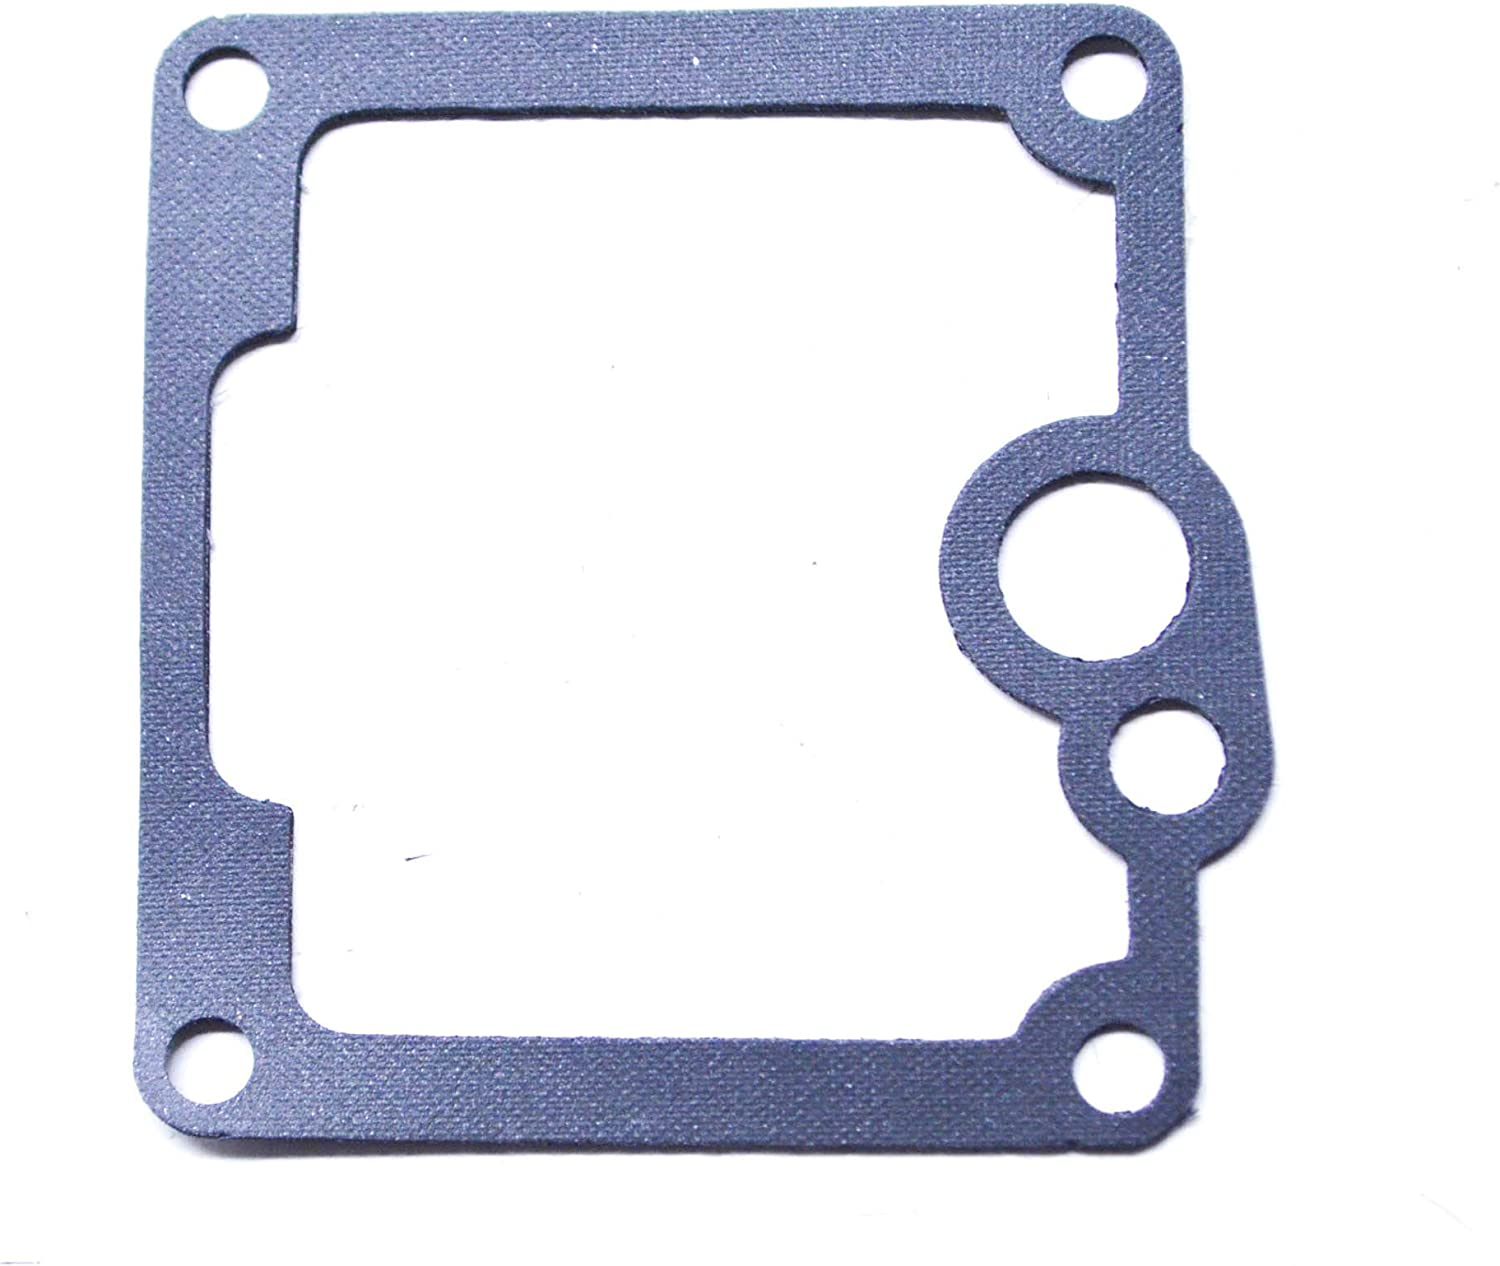 Yamaha 5H0-14384-00-00 Gasket,Float Chmbr; ATV Motorcycle Snow Mobile Scooter Parts